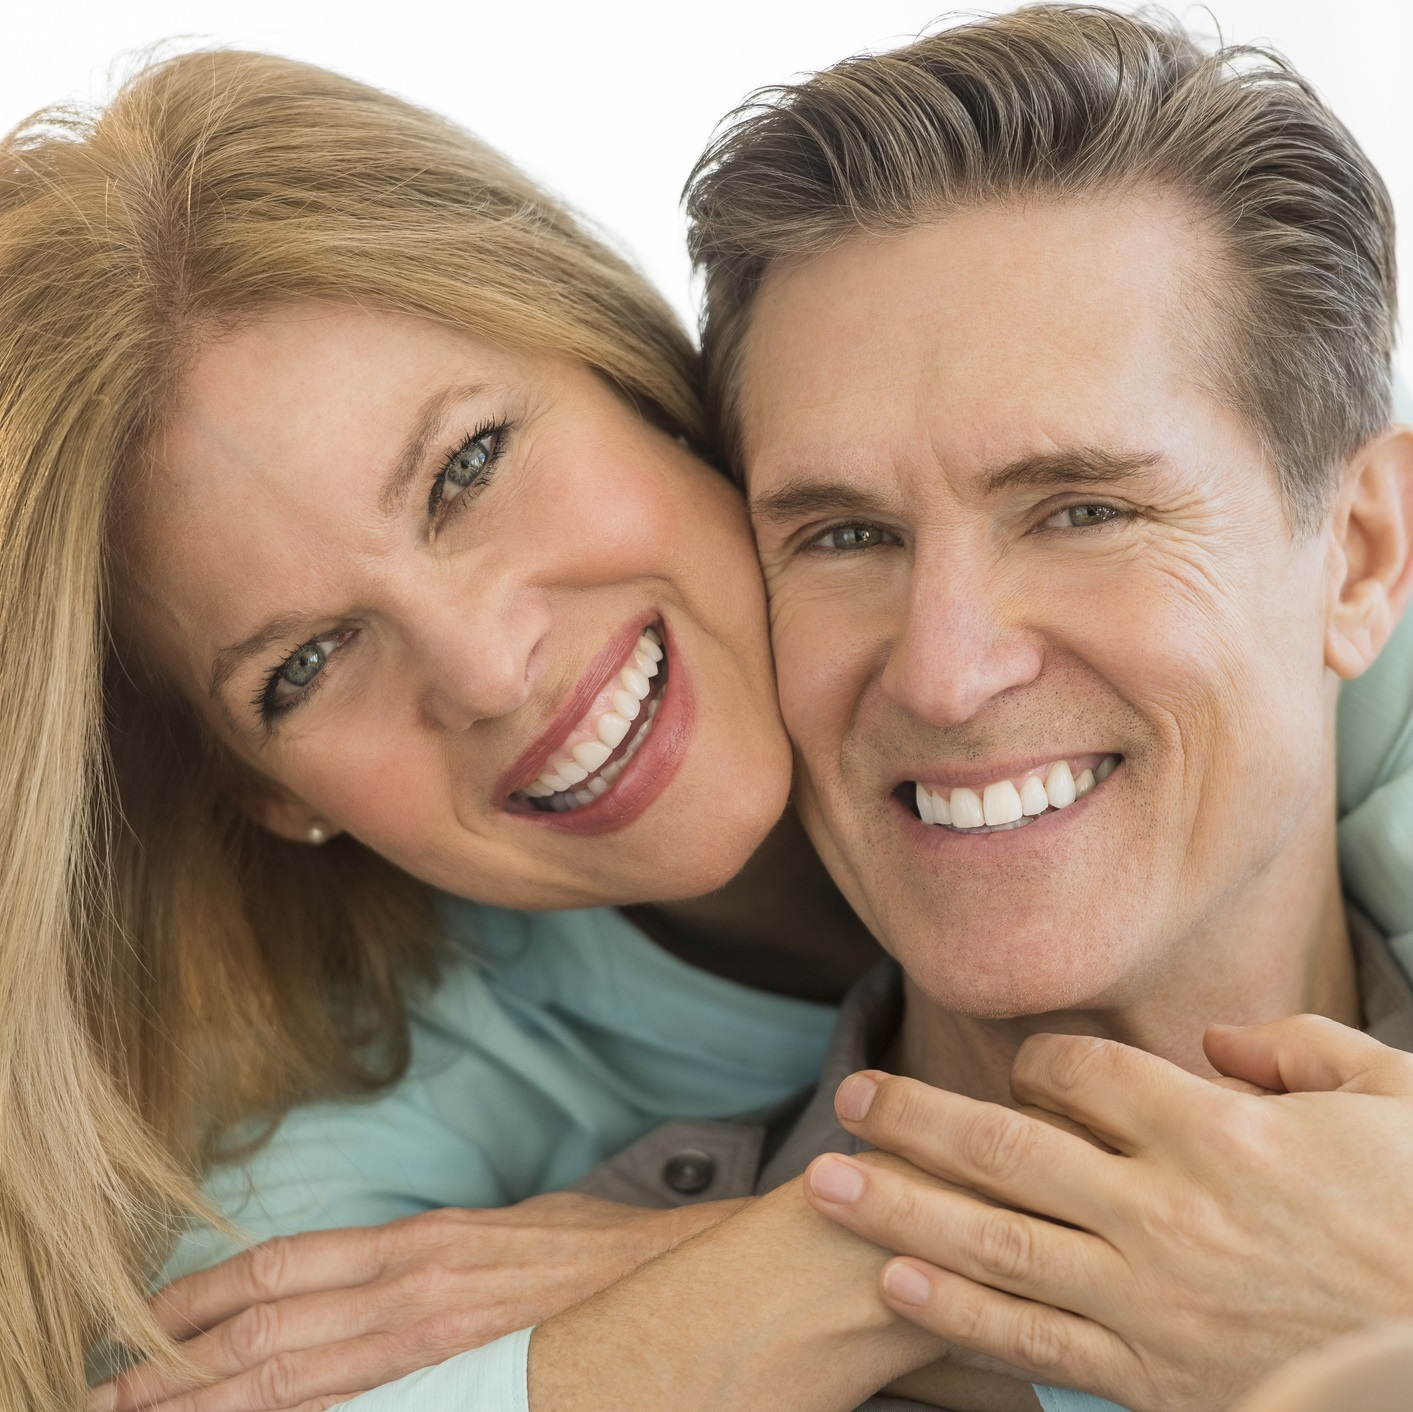 Happy woman embracing man on sofa at home confidently smiling with All-on-4 dental implants.